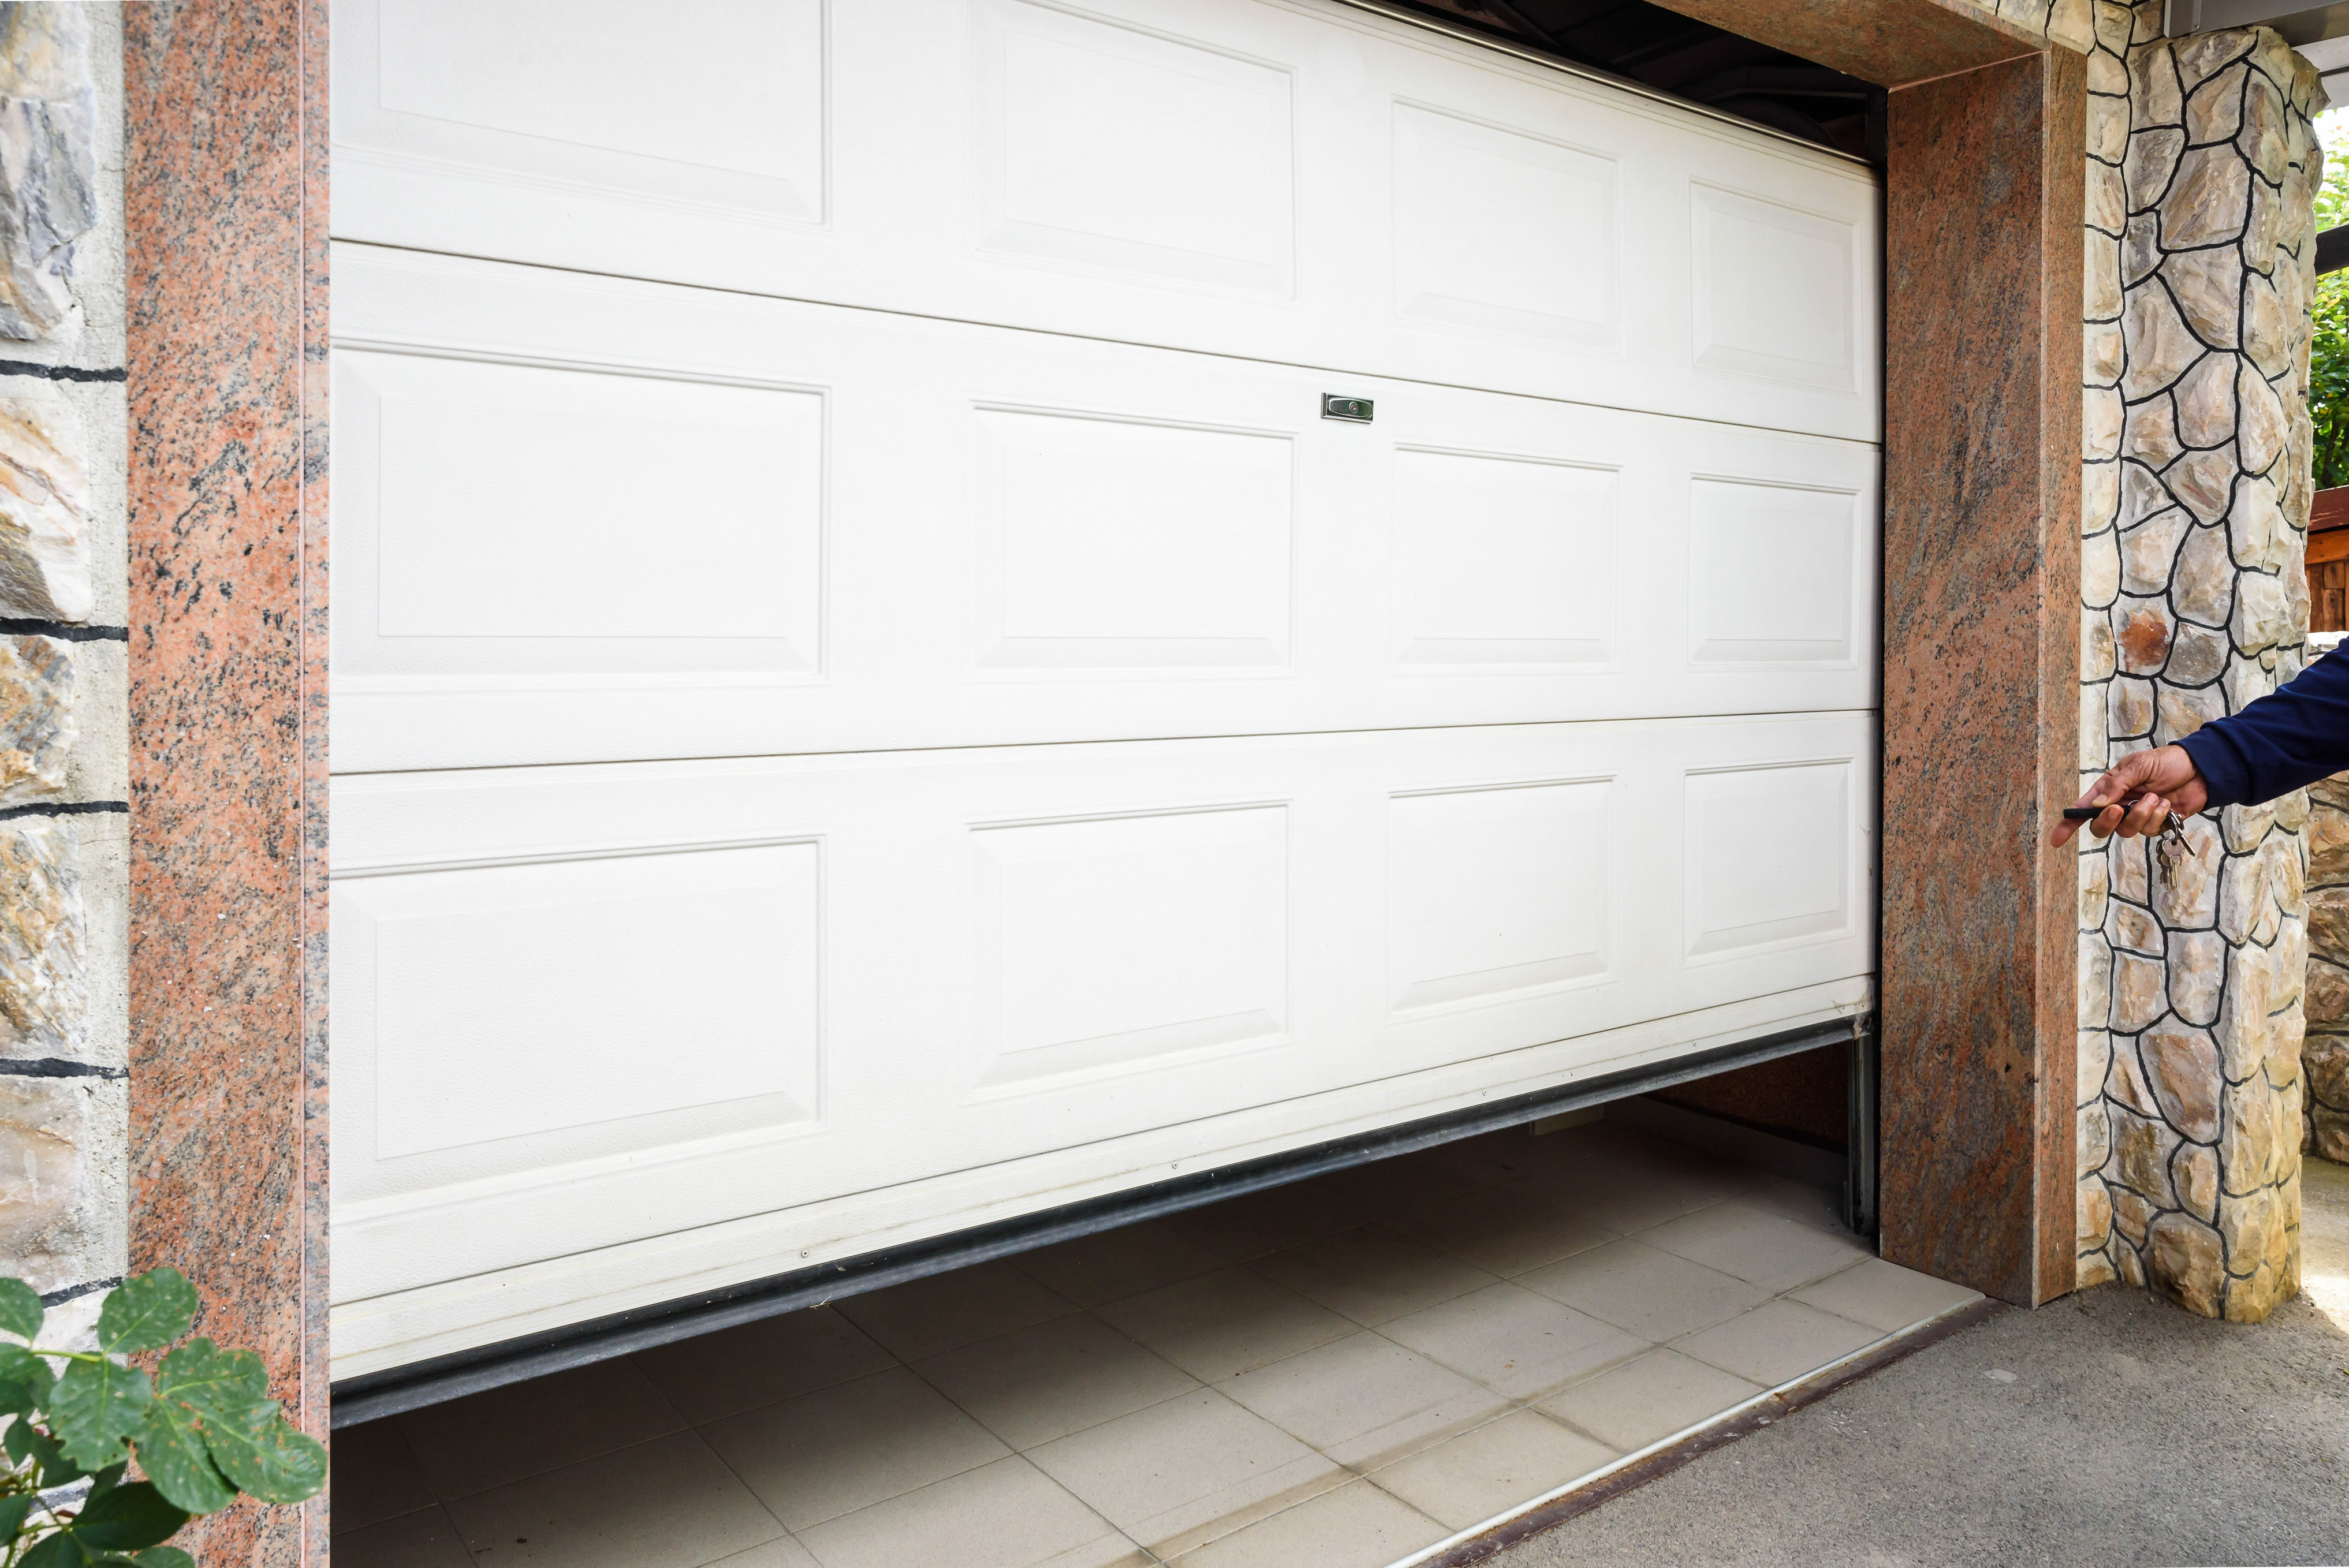 Why Is My Garage Door Slow To Open And Close?